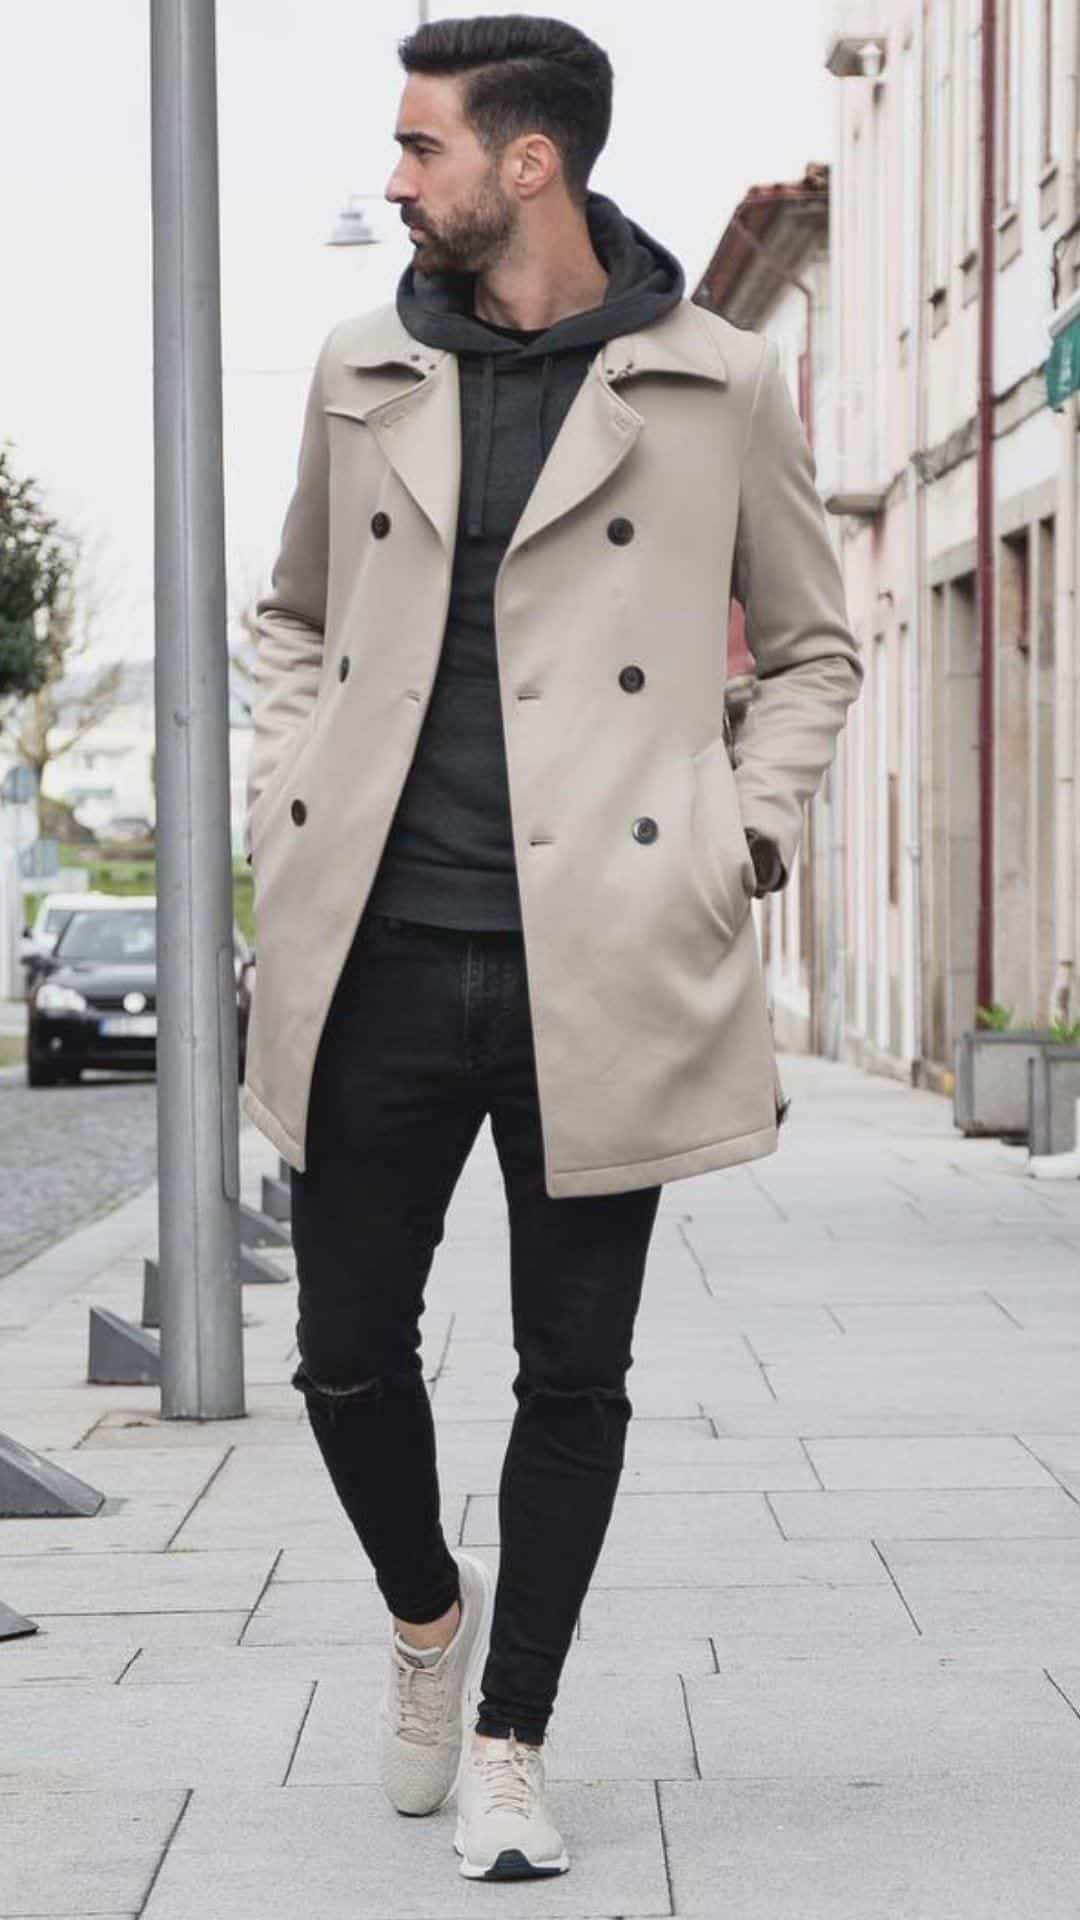 5_Long_coat_outfits_for_men_6 Cute Outfits for Skinny Guys - Styling Tips With New Trends